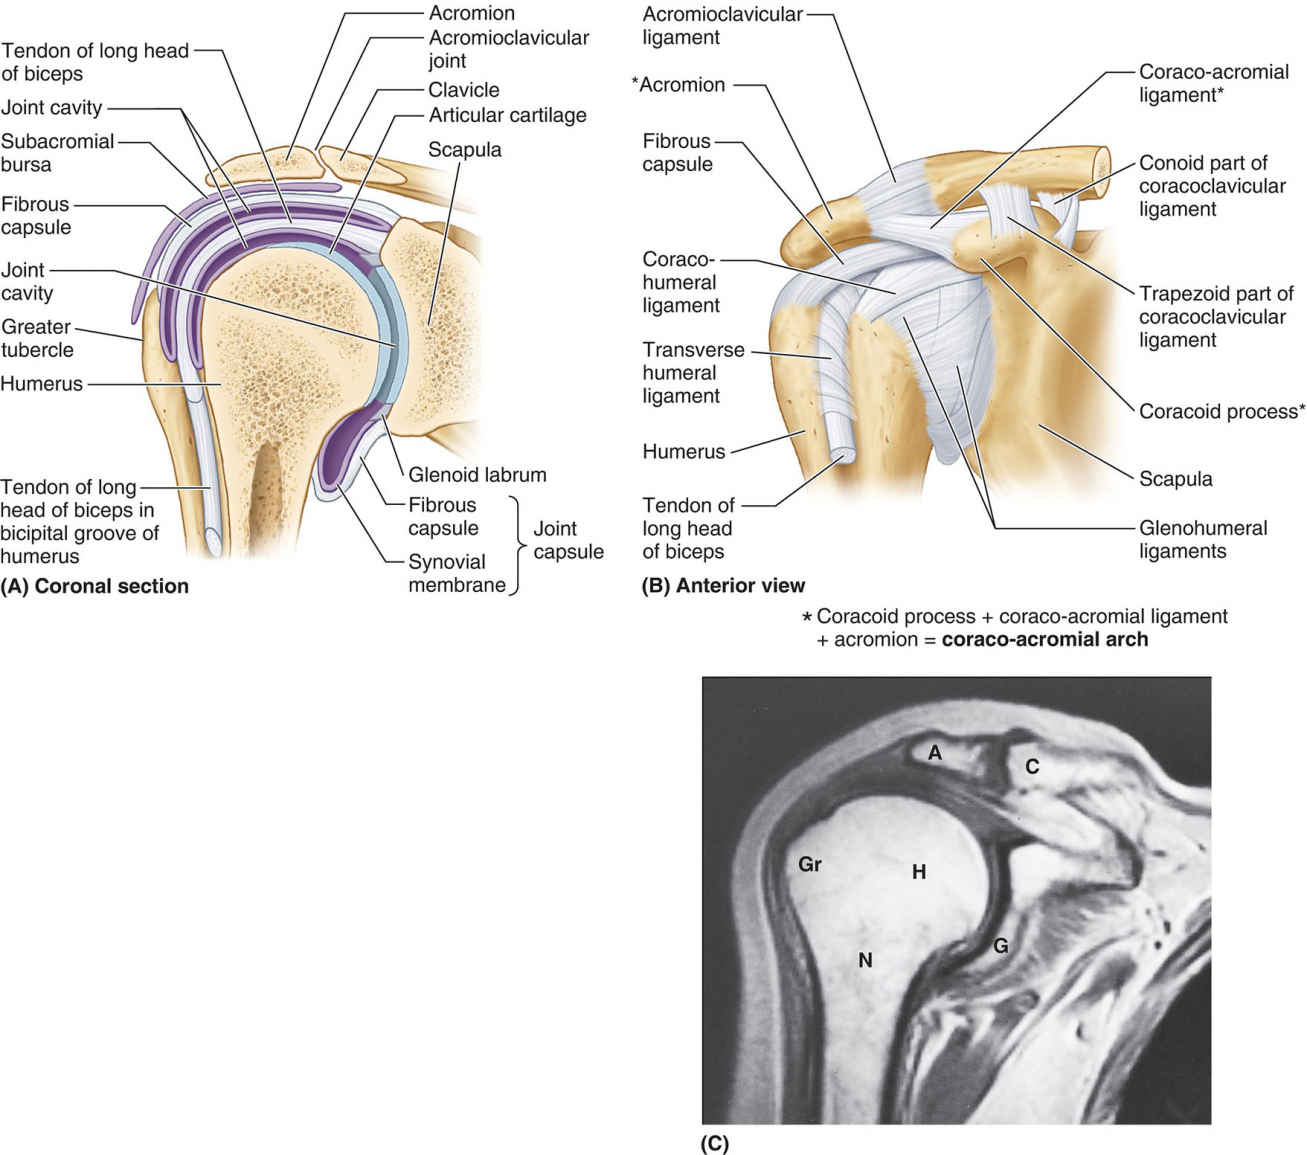 Capsules And Ligaments Of Glenohumeral And Acromioclavicular Joints